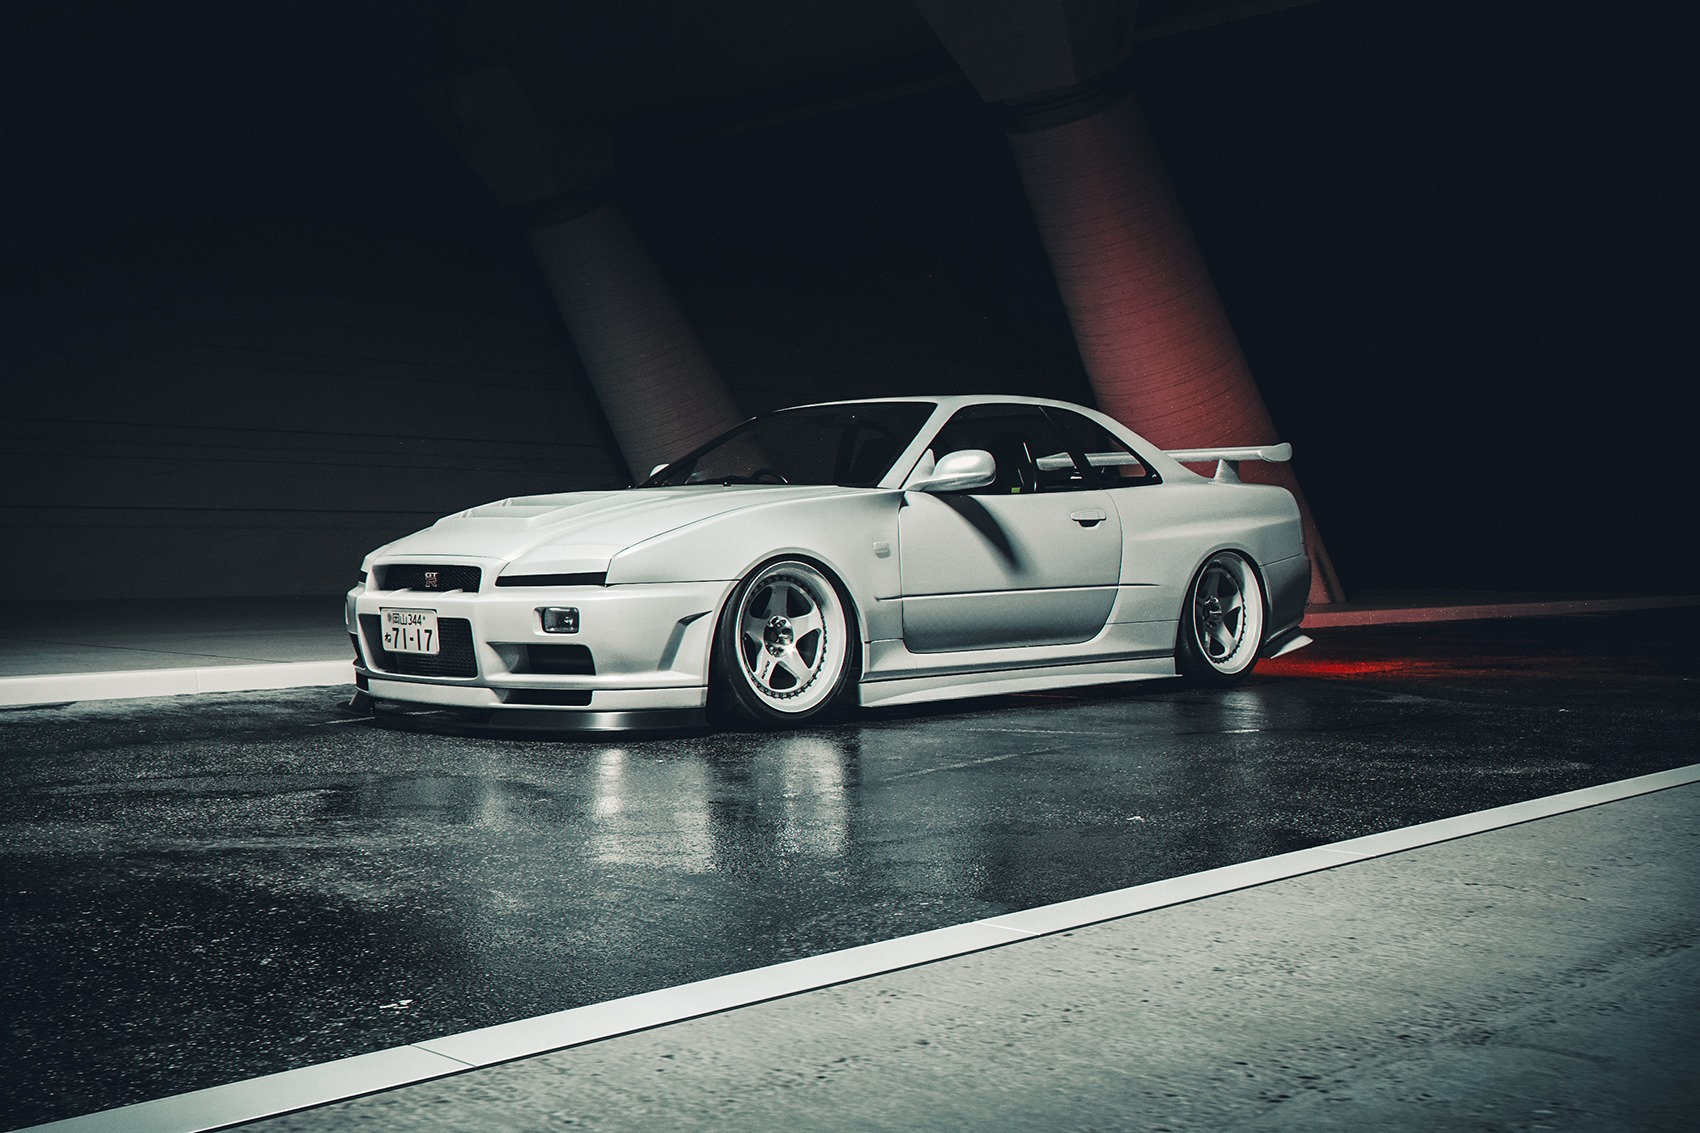 Nissan-GT-R-R34-pop-up-headligths-6